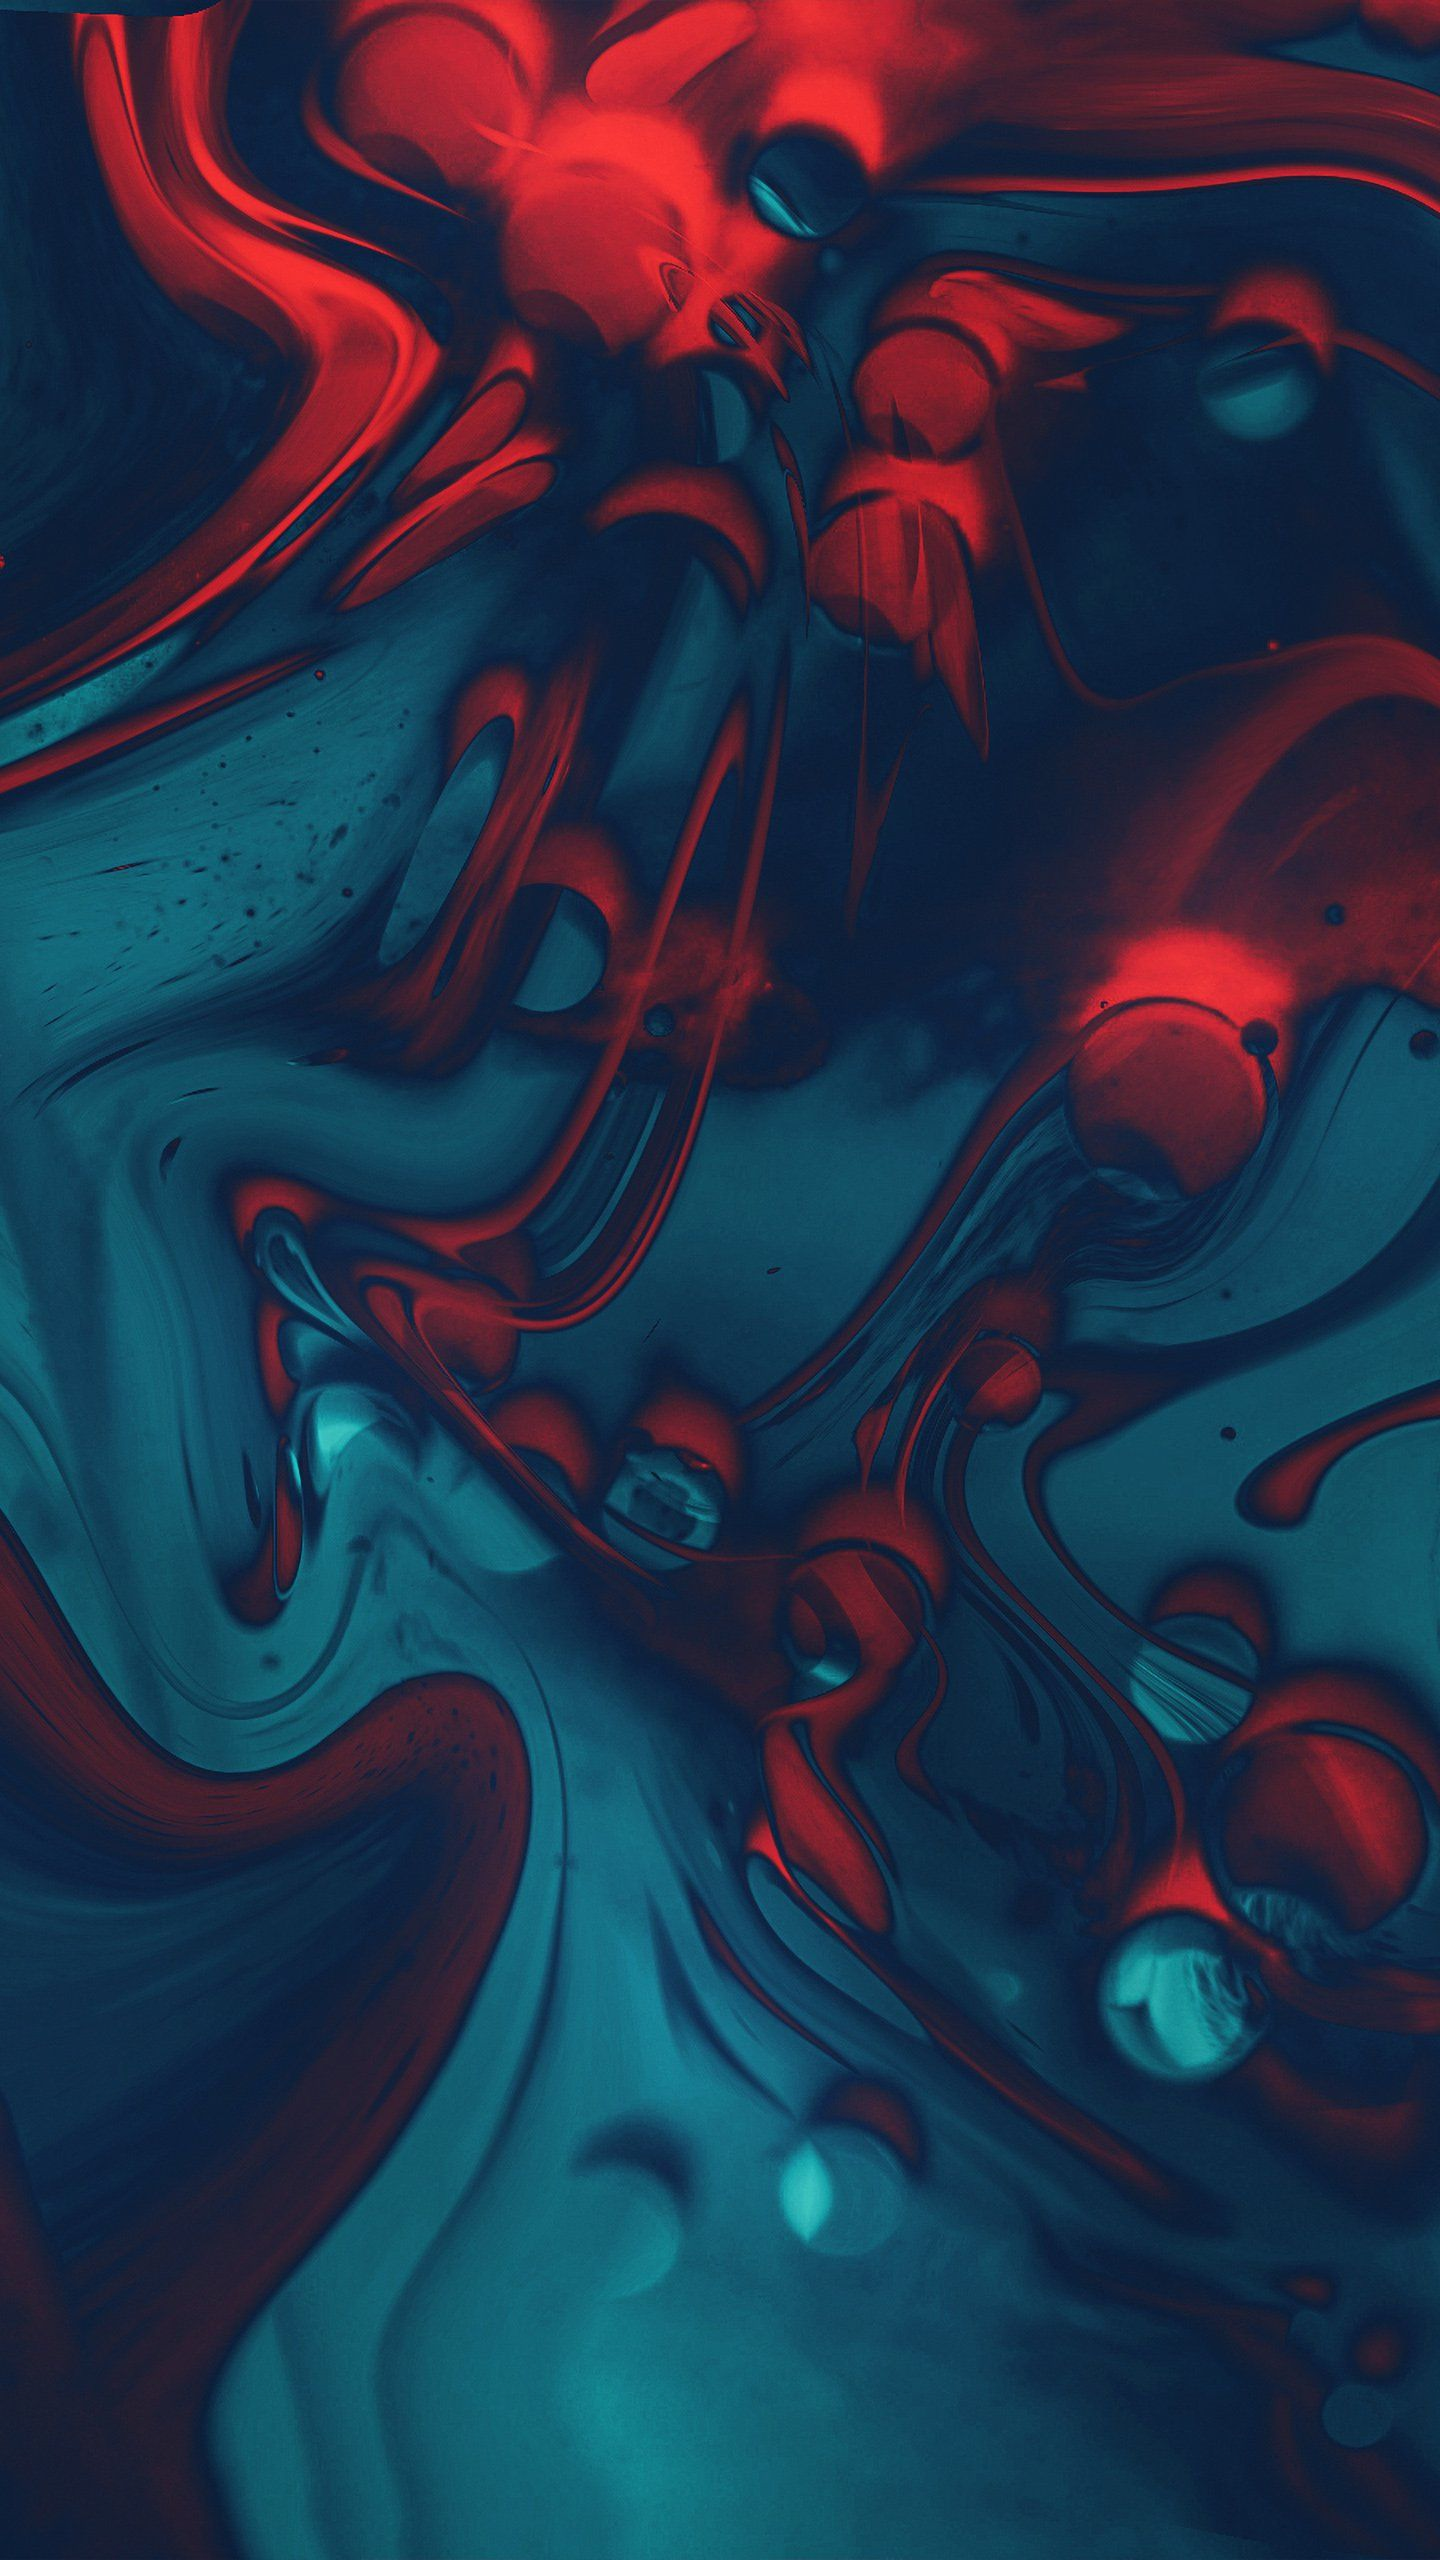 Red/Blue abstract Abstract iphone wallpaper, Art